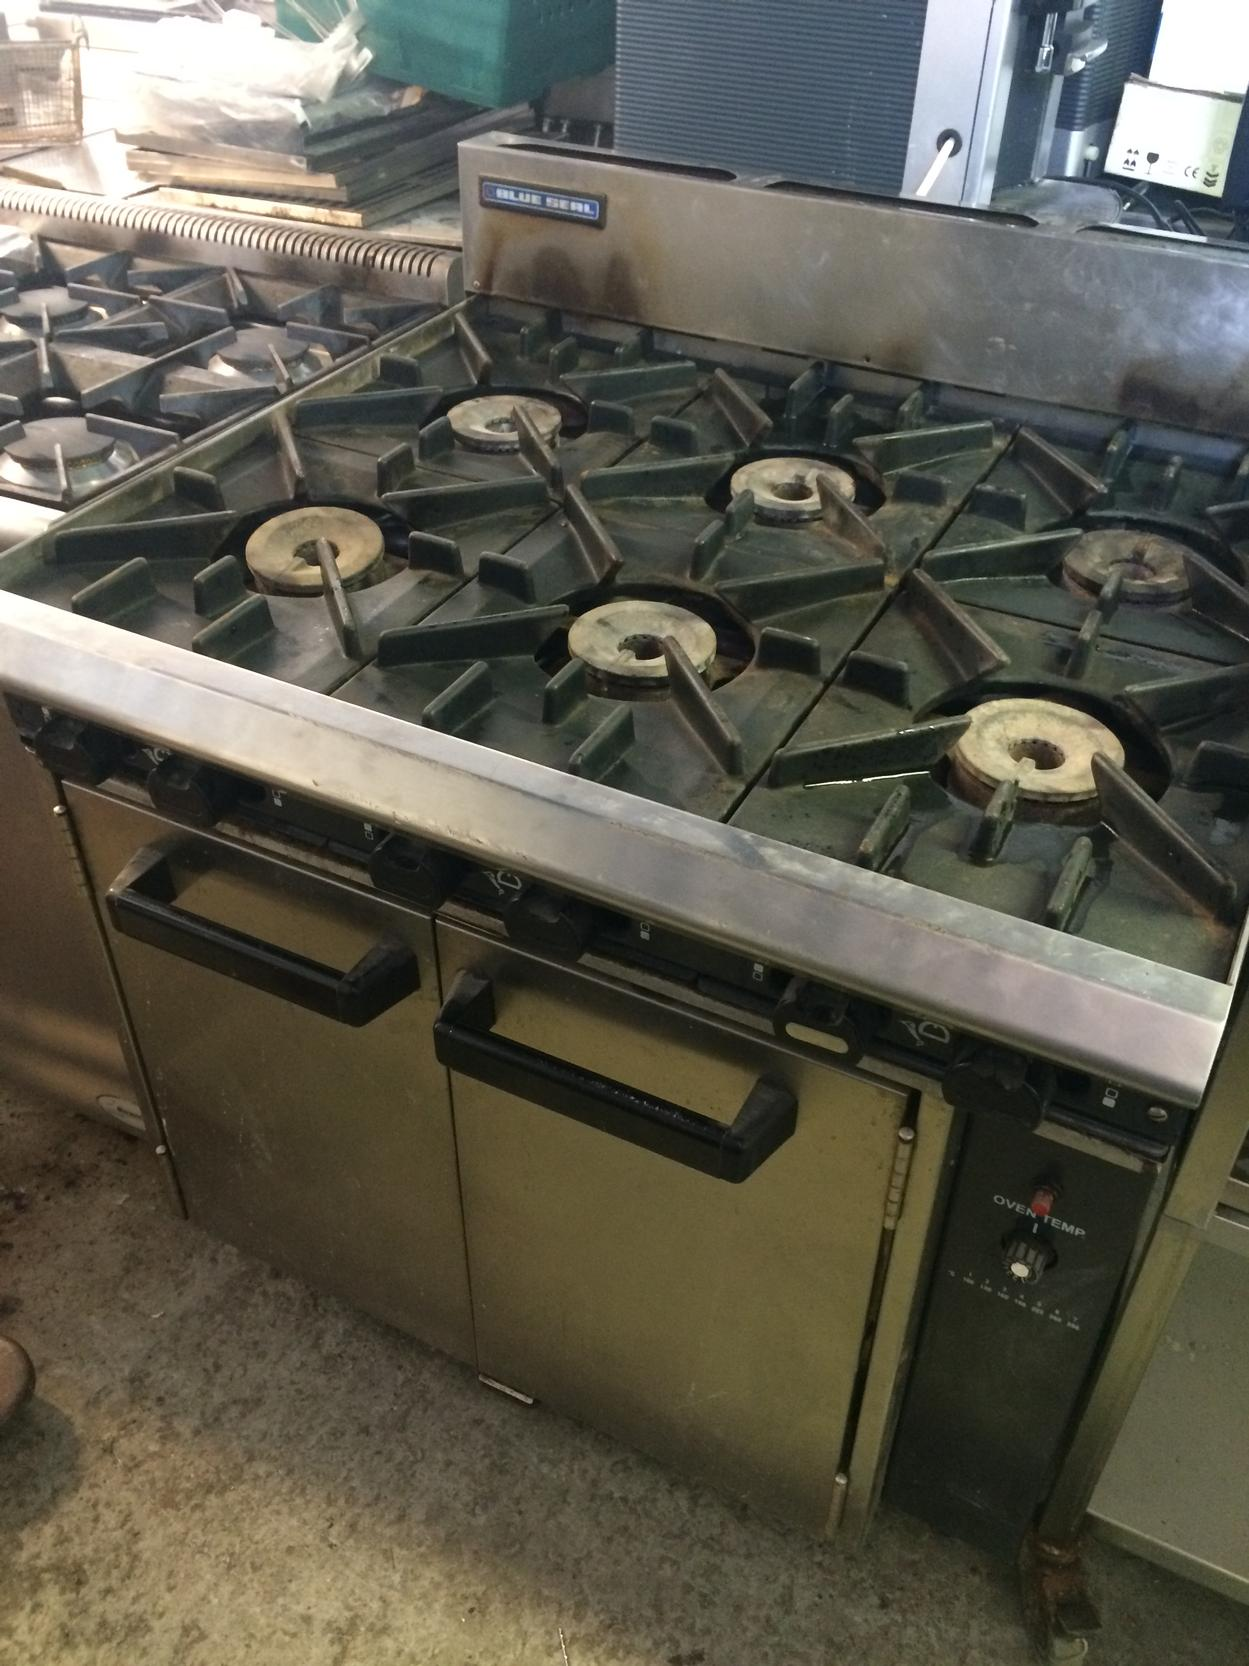 Blue Seal 6 burner gas cooker